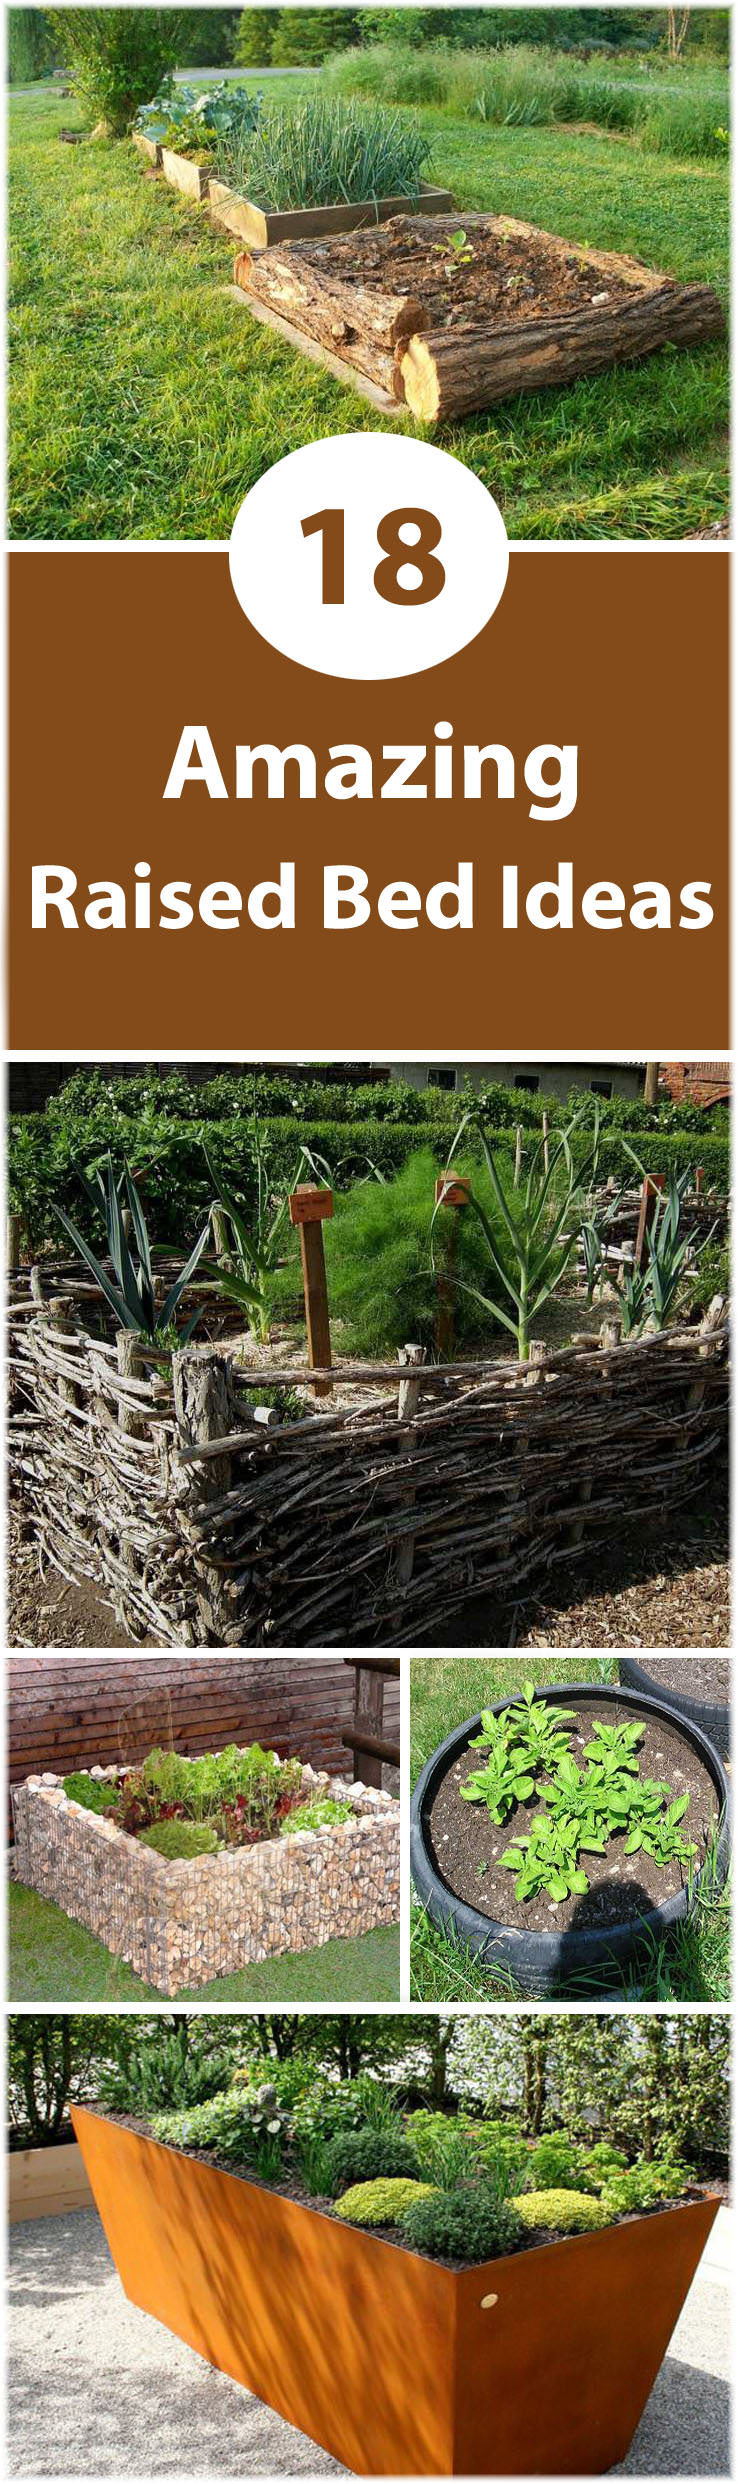 18 Great Raised Bed Ideas | Raised Bed Gardening | Balcony ... on greenhouse design plans, raised vegetable garden design ideas, cedar raised garden bed plans, privacy fence design plans, best raised garden plans, diy raised garden beds plans, raised garden layout, raised bed garden box design, marshmallow catapult design plans, cheap raised garden bed plans, raised garden planting plans, corner pergola design plans, small garden design plans, vegetable garden design plans, raised bed gardening designs, exhibition booth design plans, attached pergola design plans, easy raised garden plans, luxury home design plans,